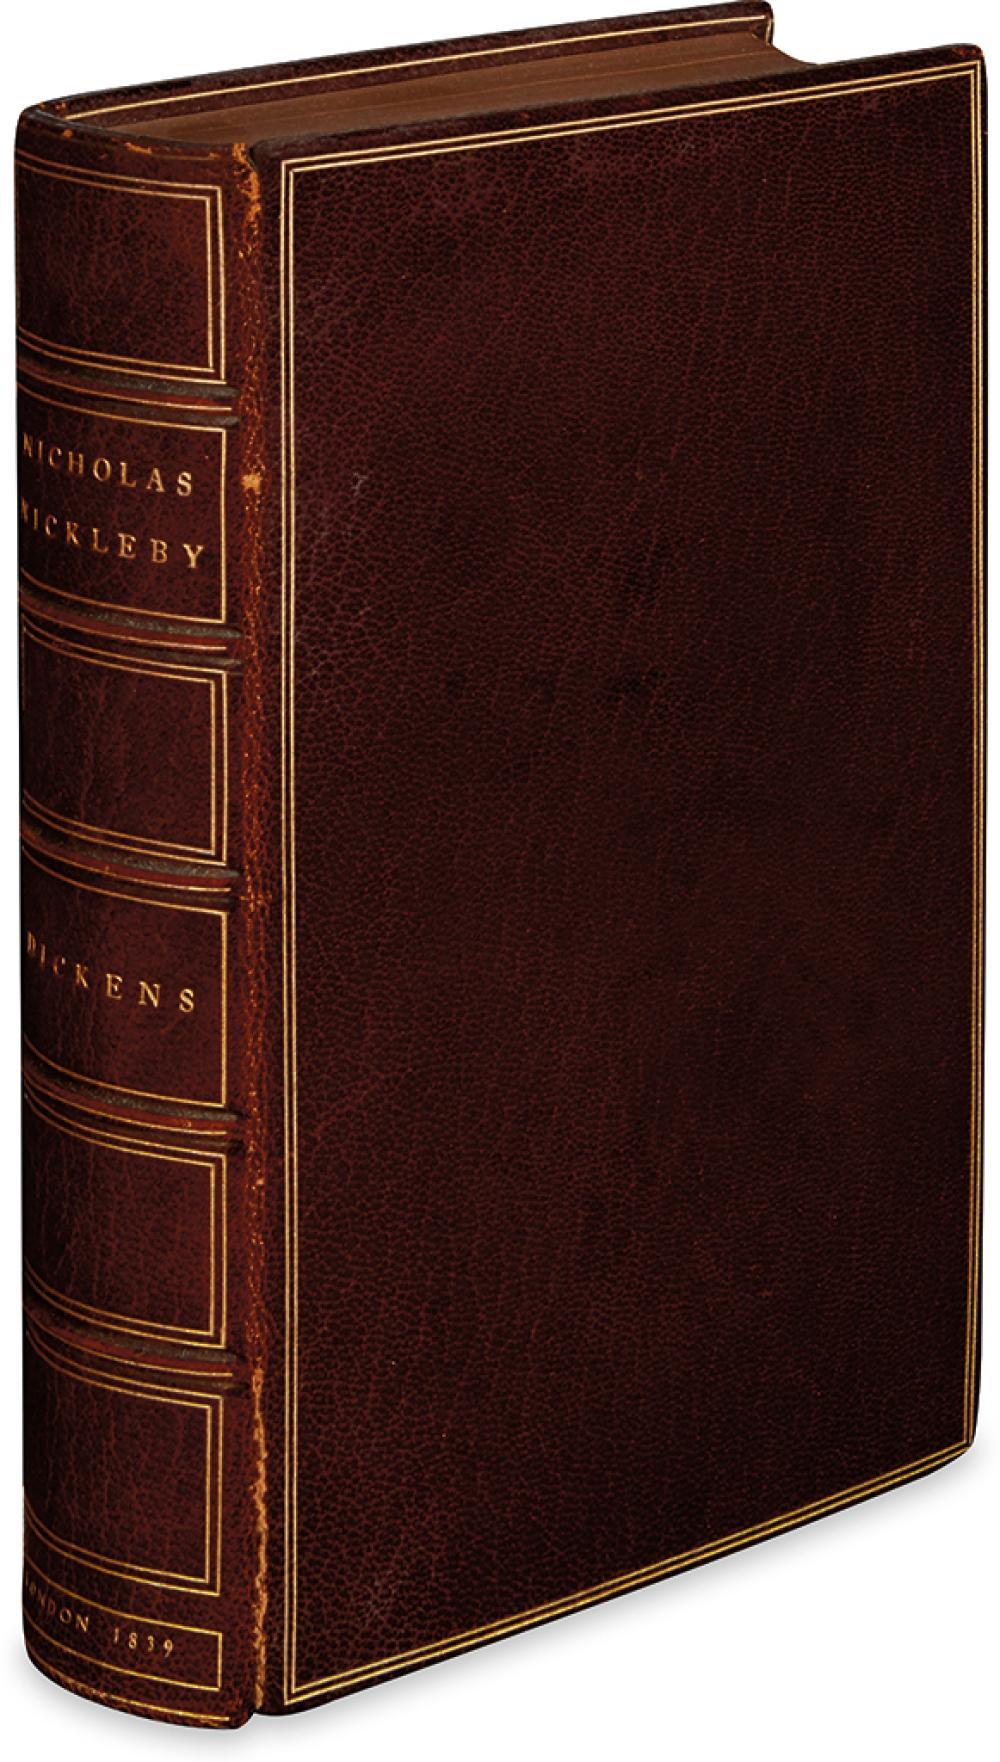 DICKENS, CHARLES. Life and Adventures of Nicholas Nickleby.